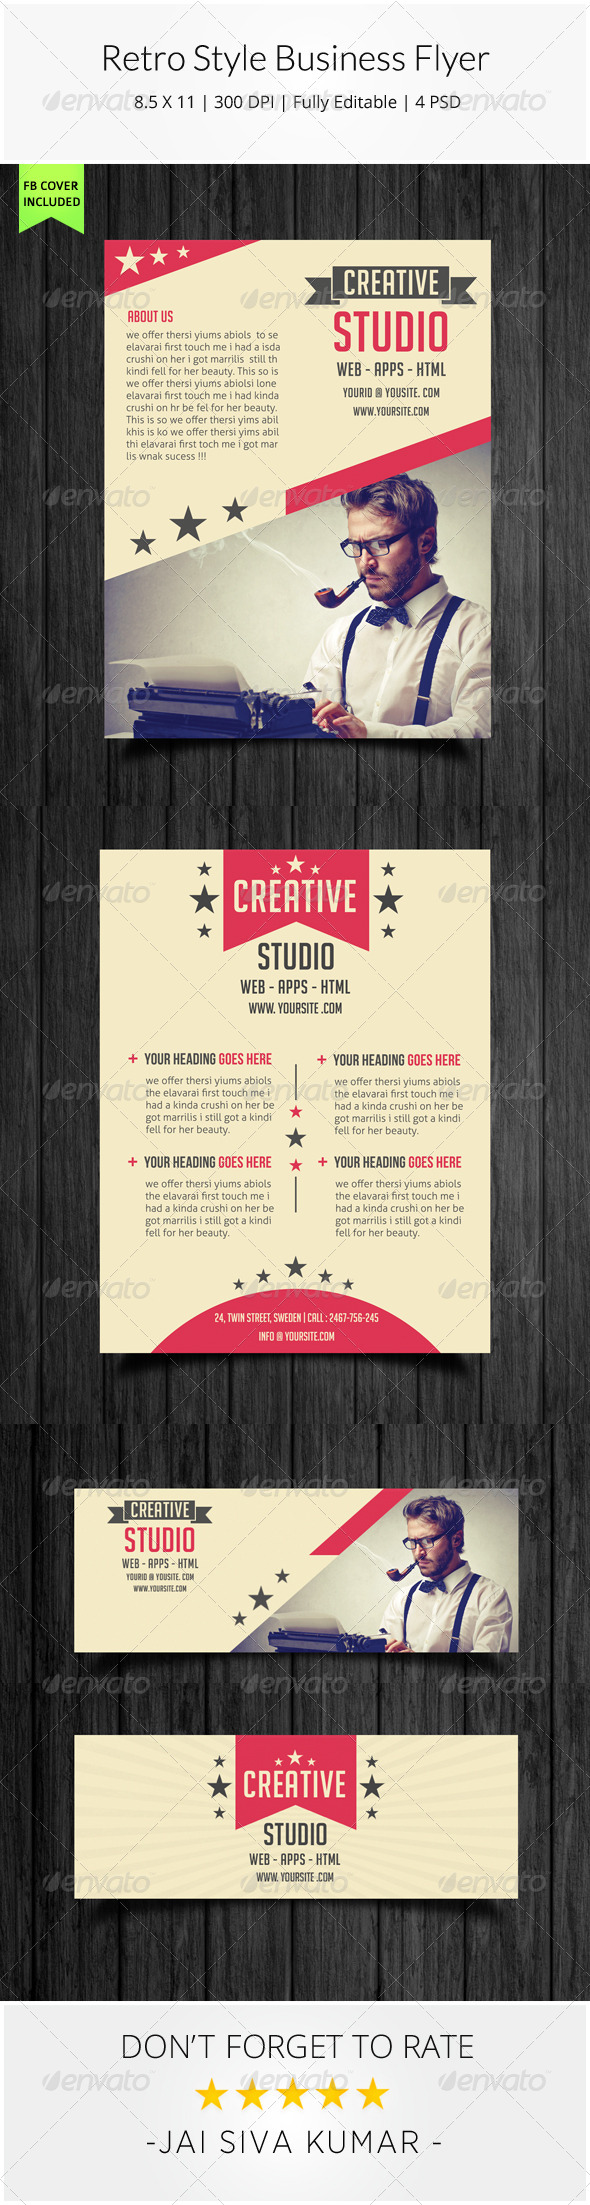 GraphicRiver Retro Style Business Flyer 8435736